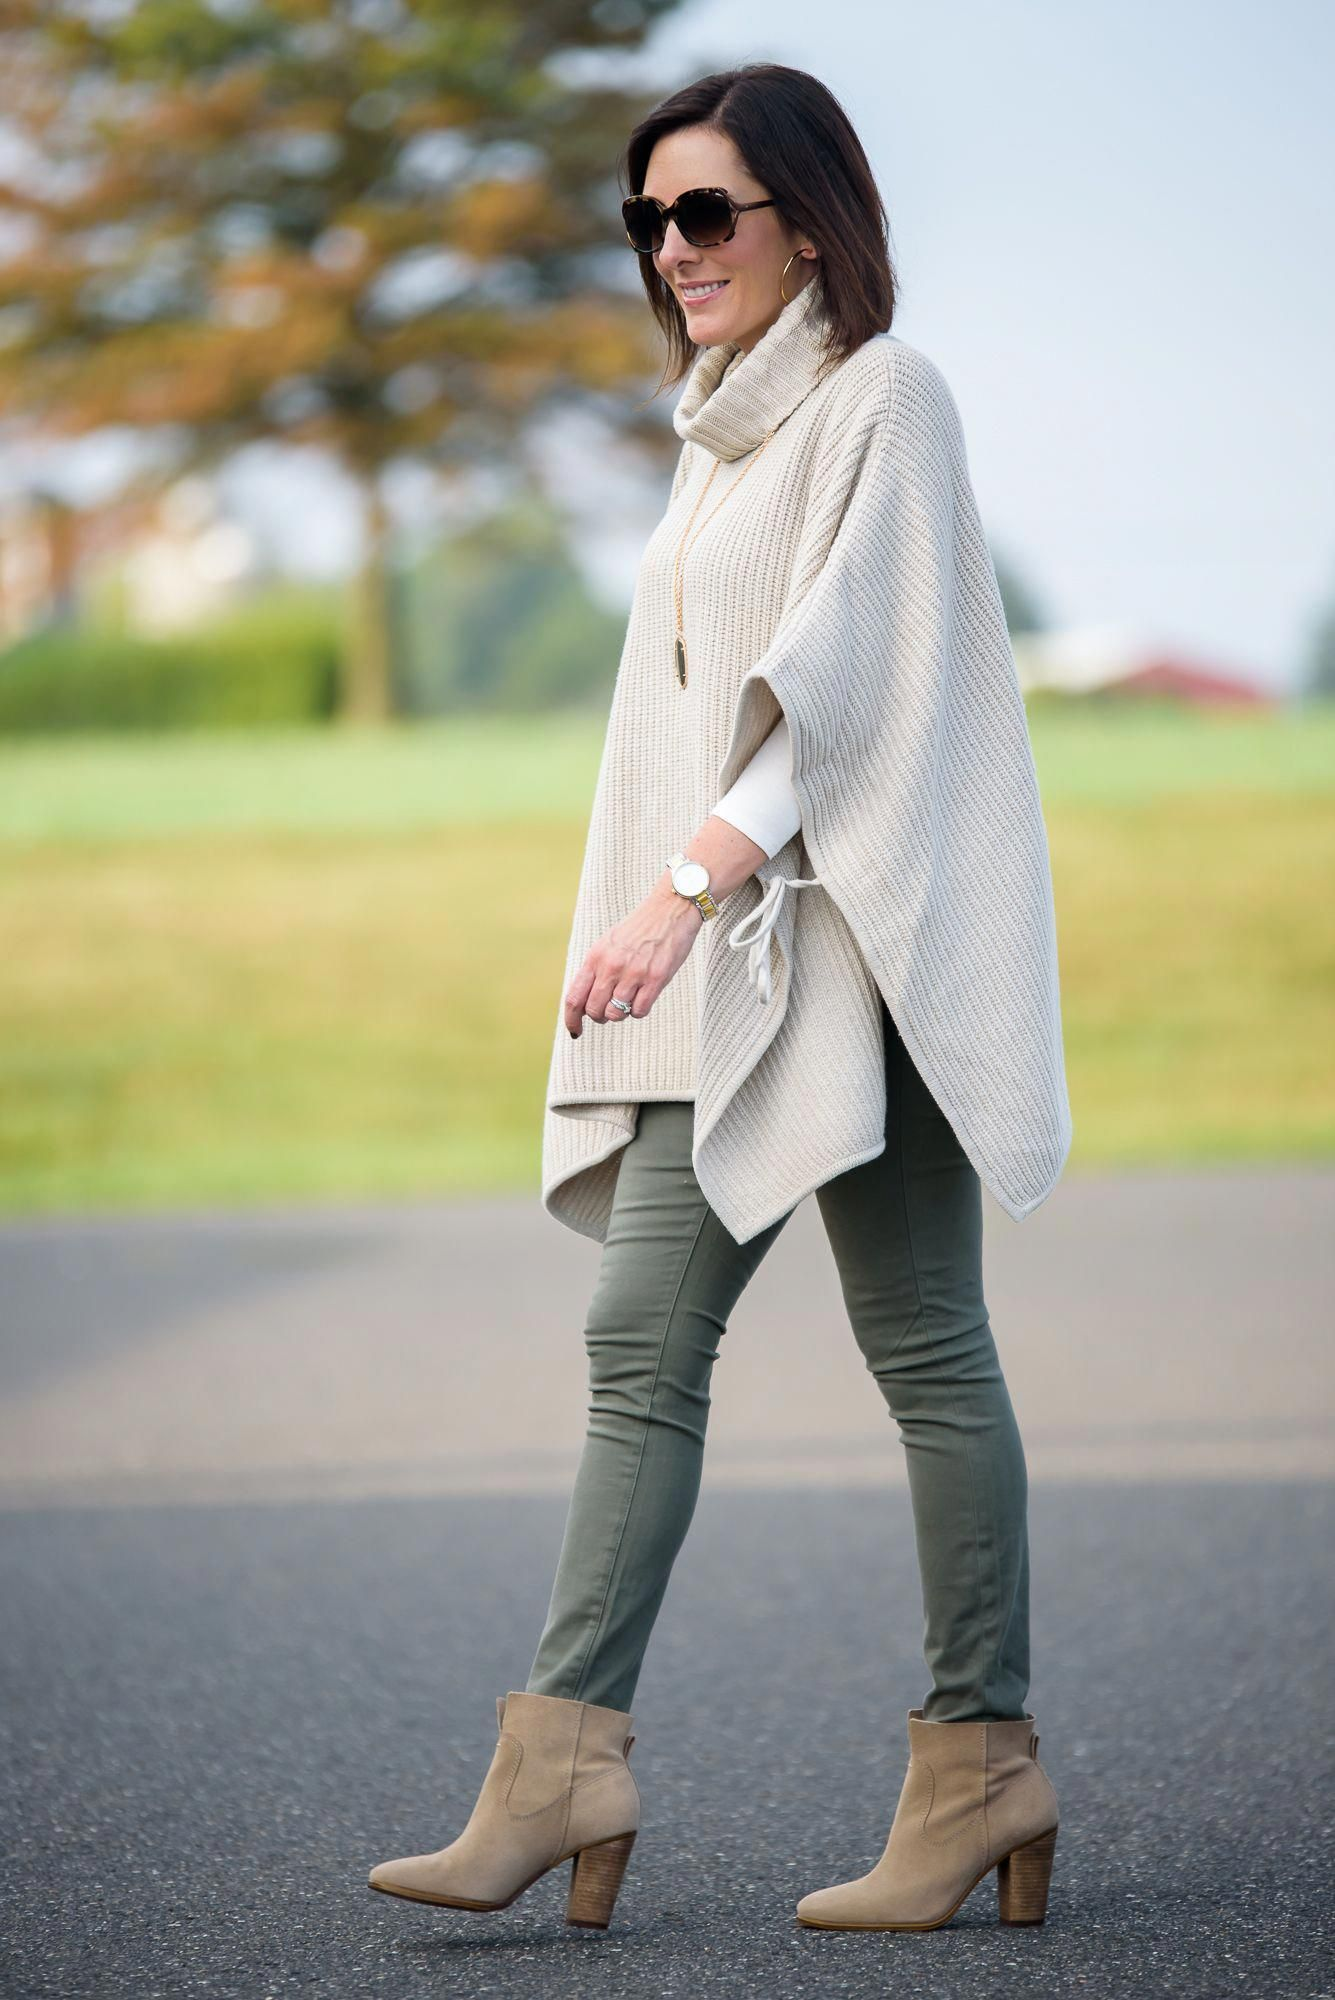 I teamed up with 3 other fashion bloggers to share 4 Ways to Wear Ankle Boots this Fall! My take: with a chunky side tie poncho and olive skinny jeans! Click through for 3 more ways to wear ankle boots! #fallfashionforwomenin20s #skinnyjeansandankleboots I teamed up with 3 other fashion bloggers to share 4 Ways to Wear Ankle Boots this Fall! My take: with a chunky side tie poncho and olive skinny jeans! Click through for 3 more ways to wear ankle boots! #fallfashionforwomenin20s #skinnyjeansanda #skinnyjeansandankleboots